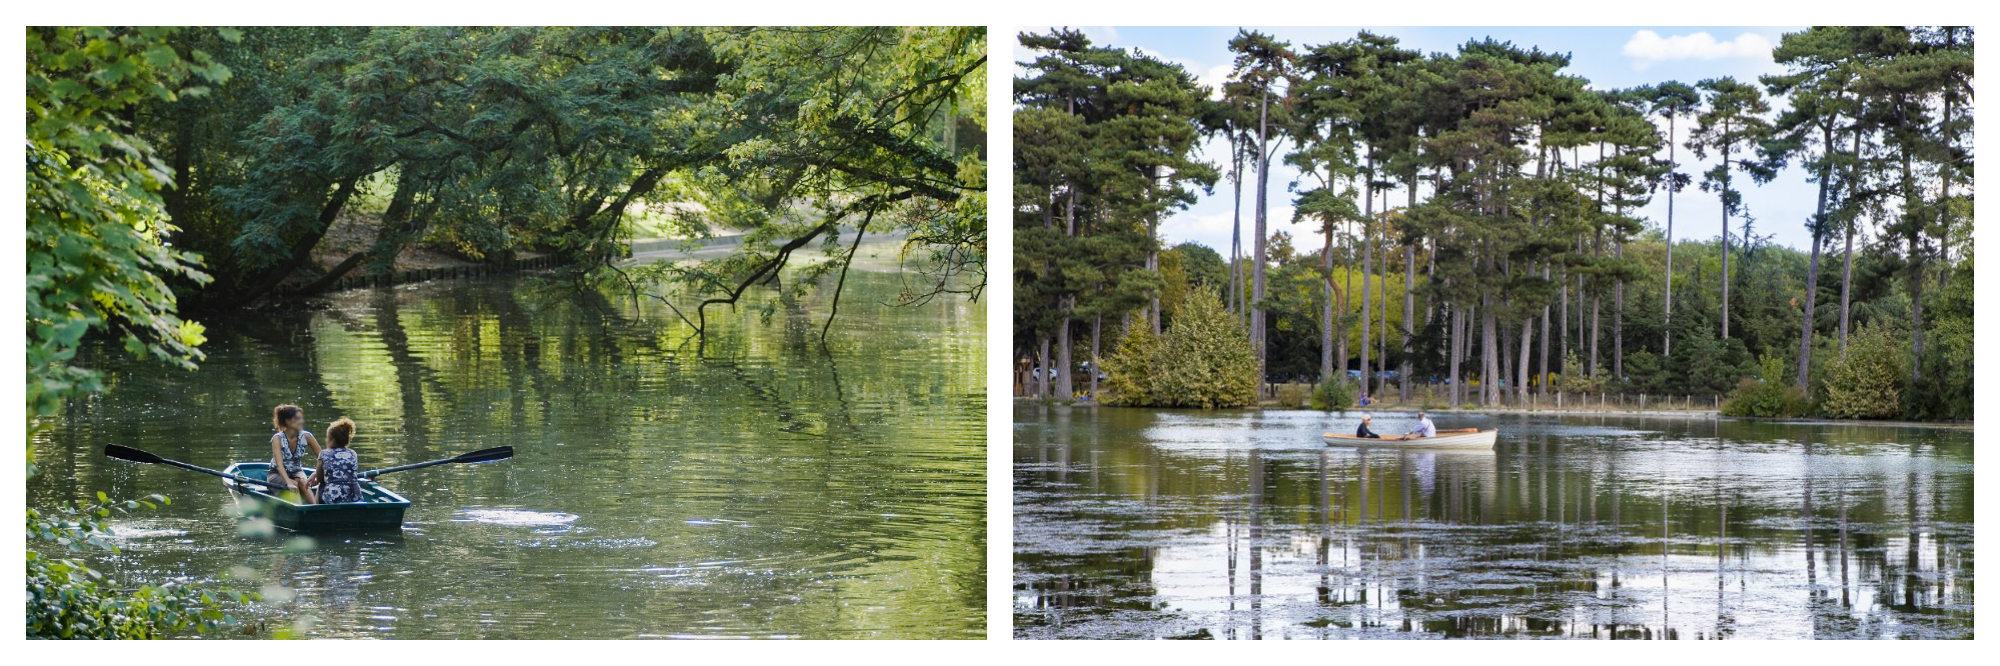 On left: Two friends enjoy a sunny afternoon at Lac Dausmenil in the Bois de Vincennes right outside of Paris, where rowboats are for rent. On right: A couple paddles a rowboat on the lake in the Bois de Boulogne, in west Paris, amidst tall trees on a sunny day.